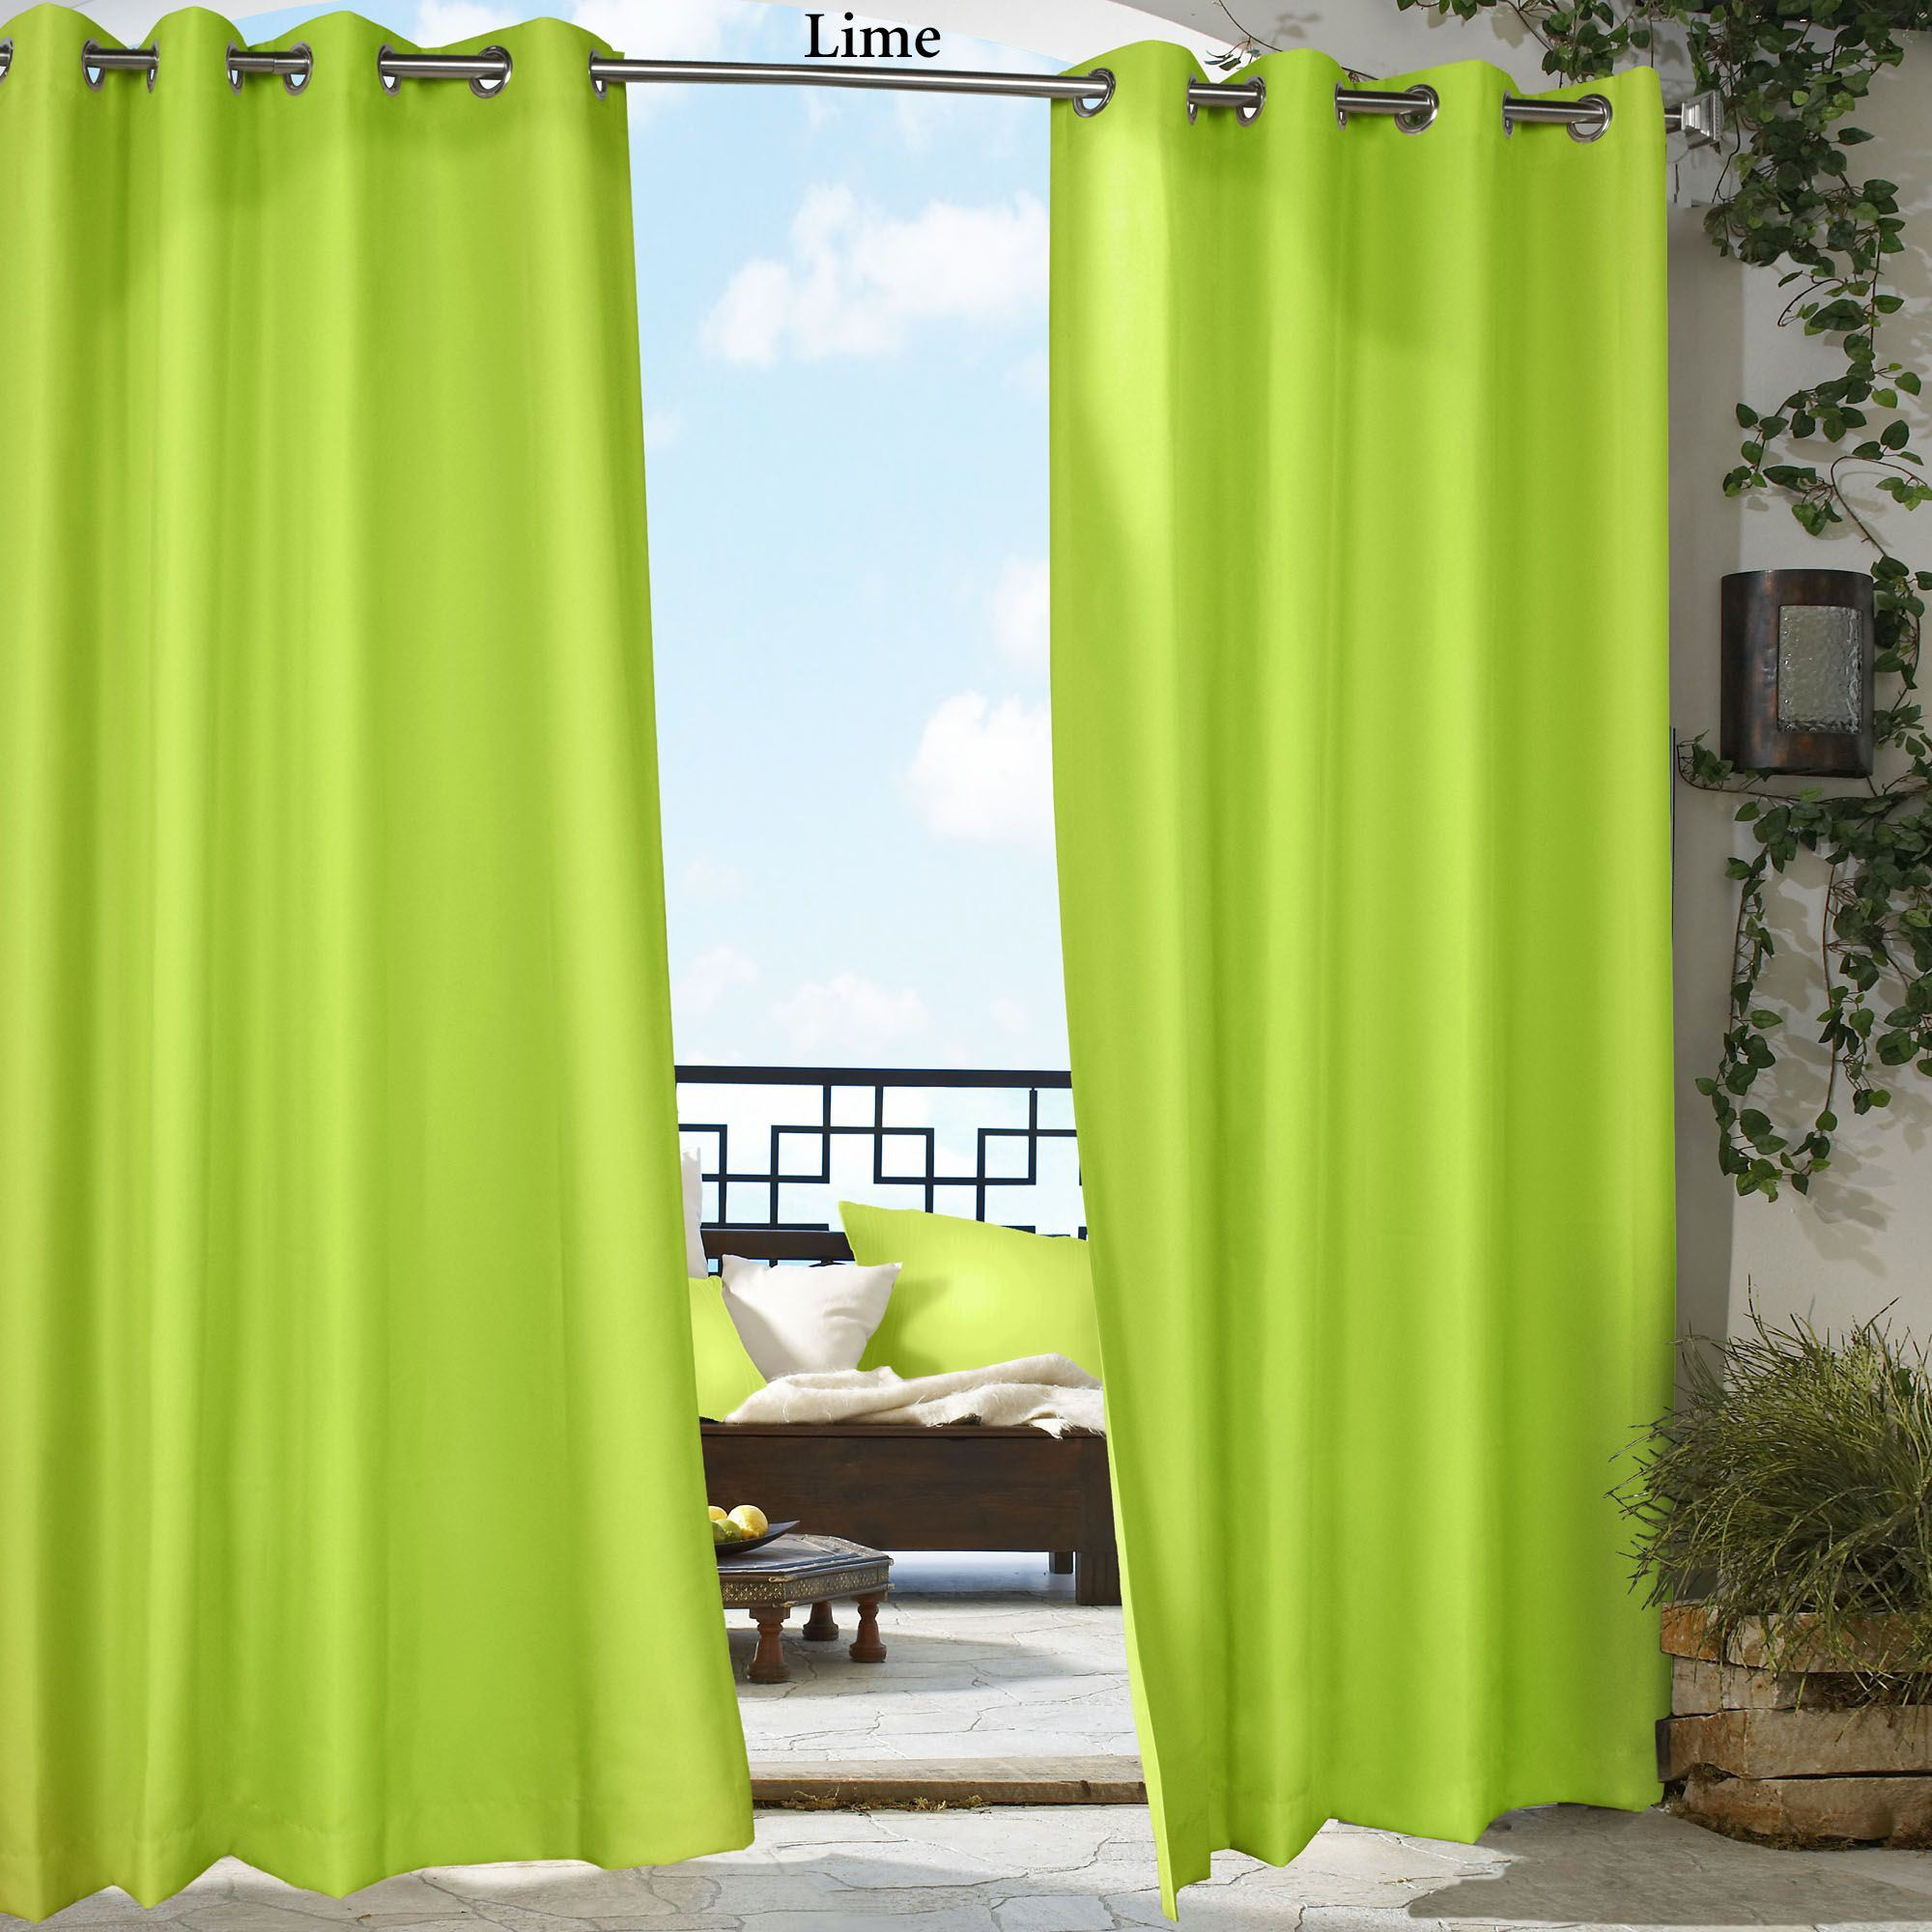 patio studentsserve outdoor curtain for inch panels org